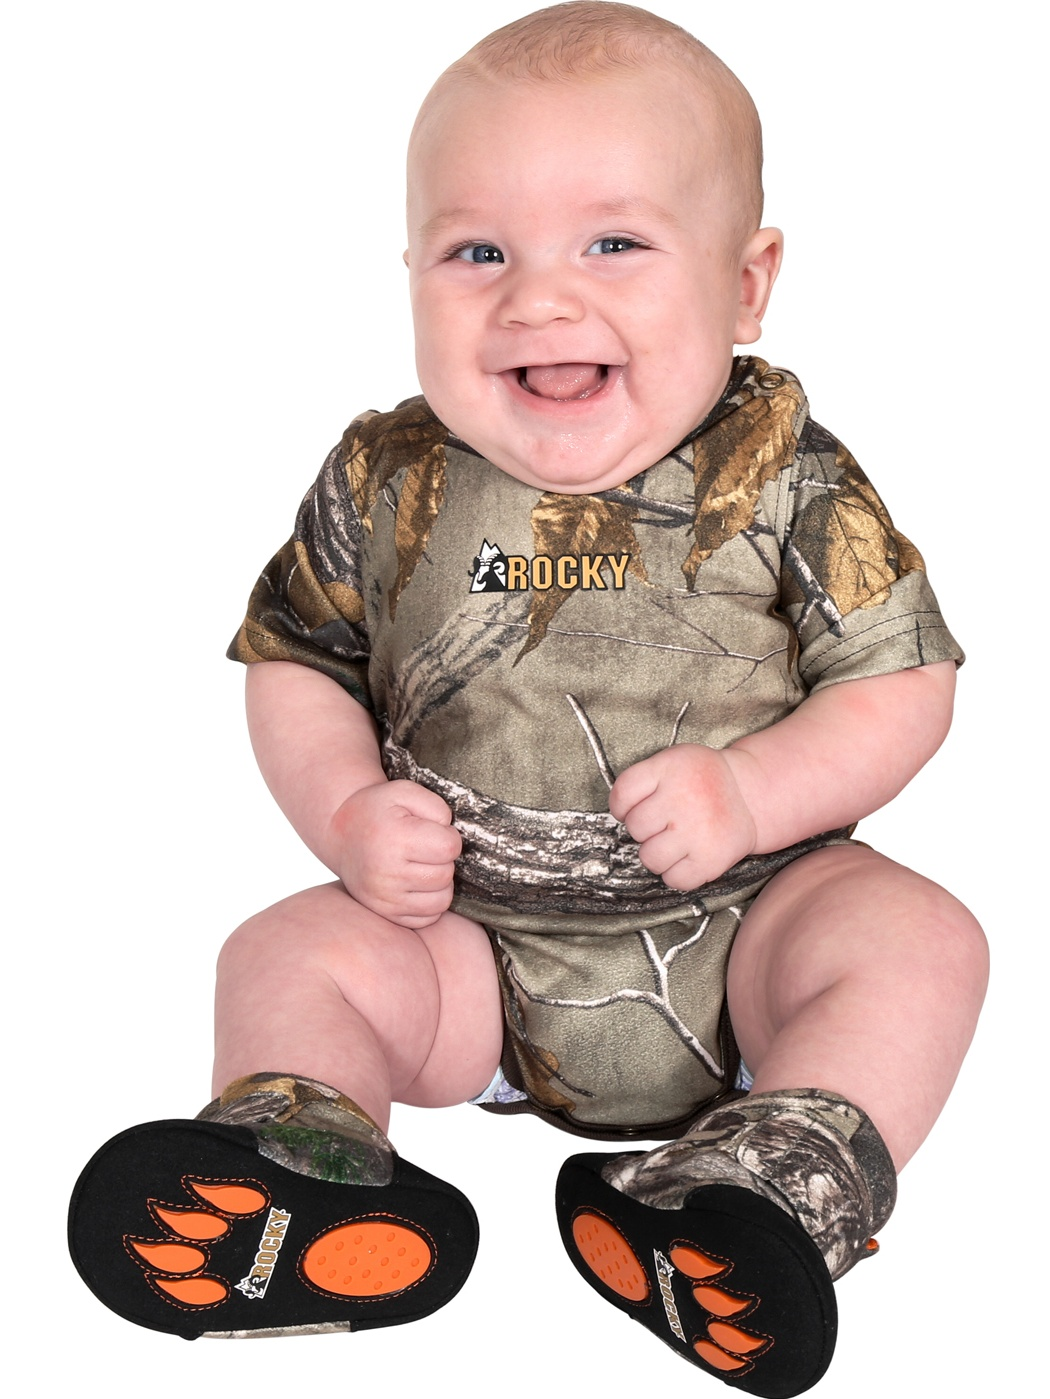 Rocky Kid's SilentHunter Camo Jumpsuit Realtree Xtra 3 Months